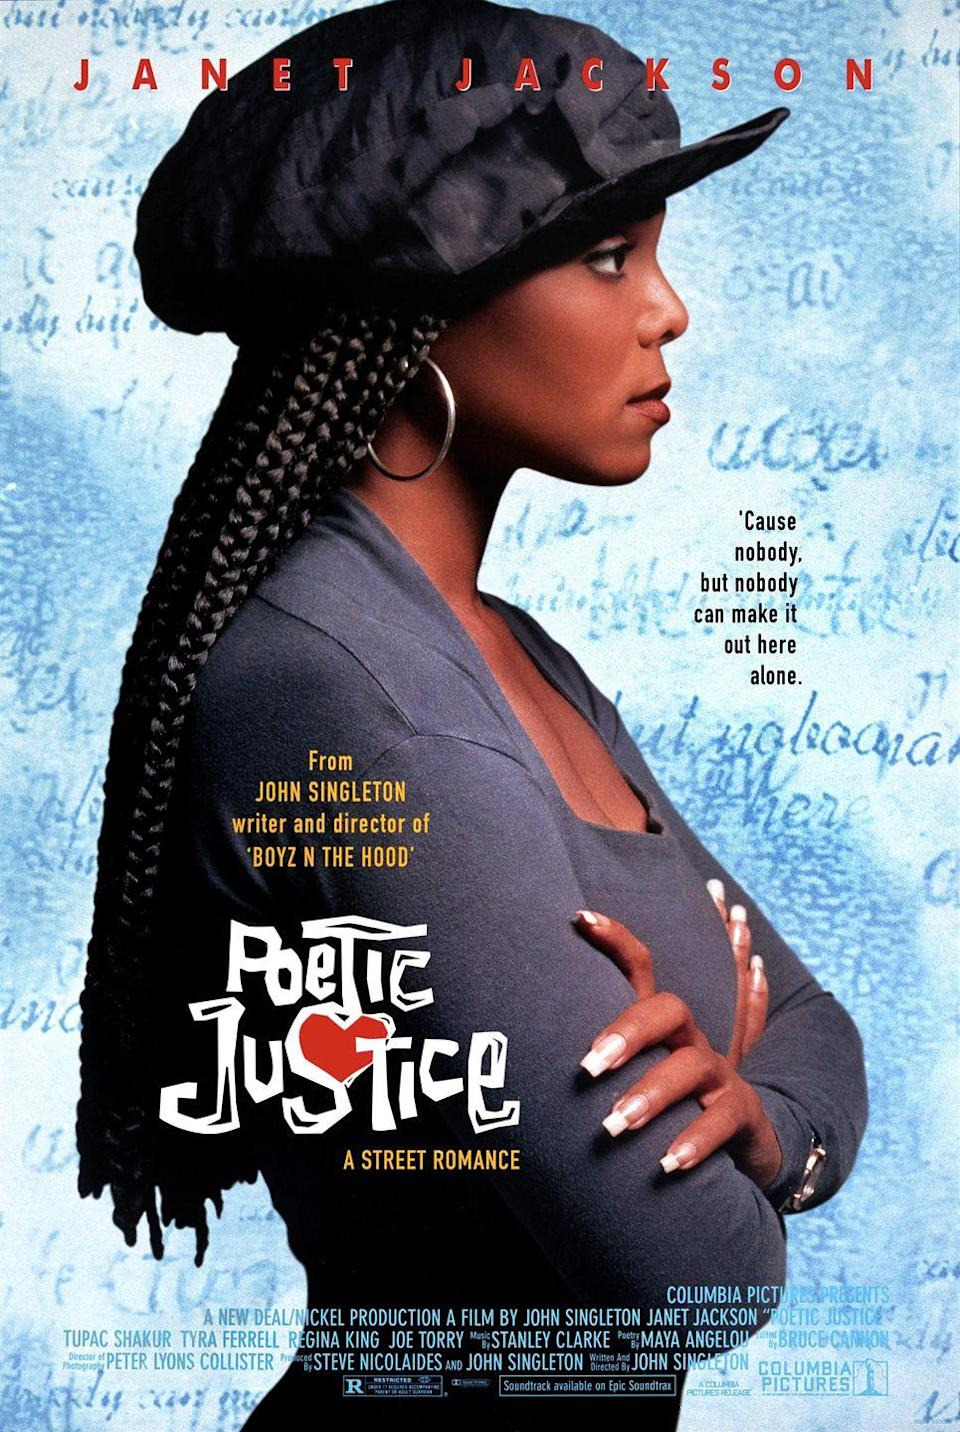 "<p>As a result of her style in the starring role in 1993's <em><a href=""https://www.amazon.com/Poetic-Justice-Regina-King/dp/0767821955?tag=syn-yahoo-20&ascsubtag=%5Bartid%7C2164.g.34836607%5Bsrc%7Cyahoo-us"" rel=""nofollow noopener"" target=""_blank"" data-ylk=""slk:Poetic Justice"" class=""link rapid-noclick-resp"">Poetic Justice</a></em>, Janet Jackson inspired women to wear their hair in <a href=""https://www.goodhousekeeping.com/beauty/hair/tips/g1894/celebrity-hairstyles-braids/"" rel=""nofollow noopener"" target=""_blank"" data-ylk=""slk:long box braids"" class=""link rapid-noclick-resp"">long box braids</a>.</p>"